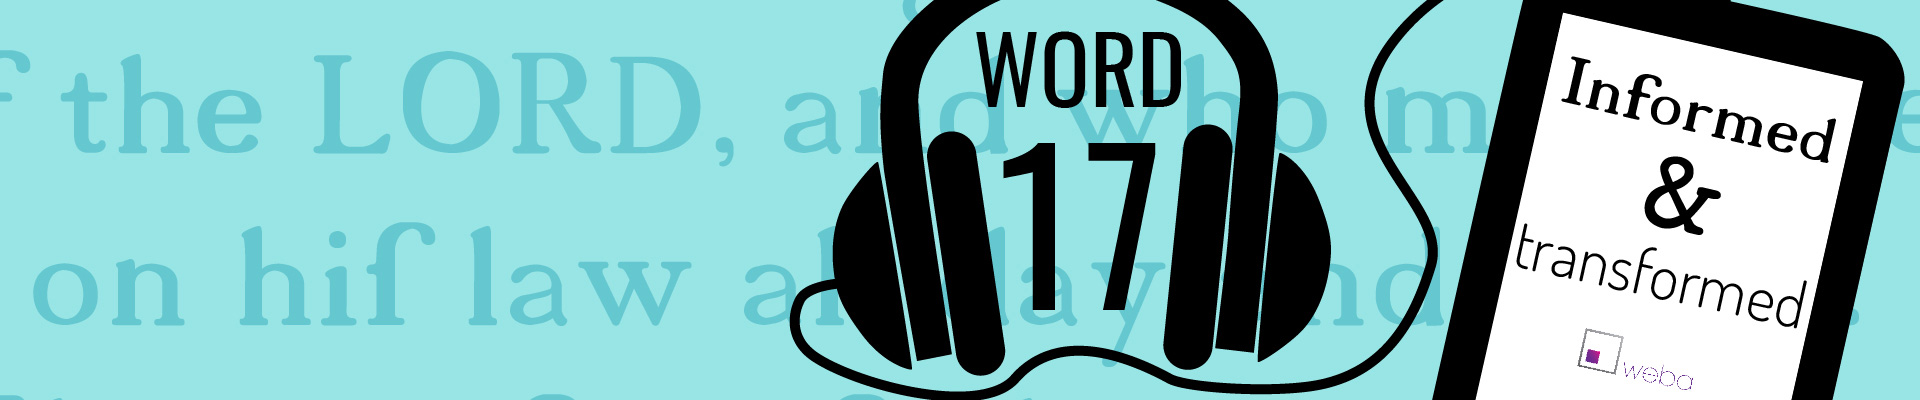 Word 17 Transformed and Transforming